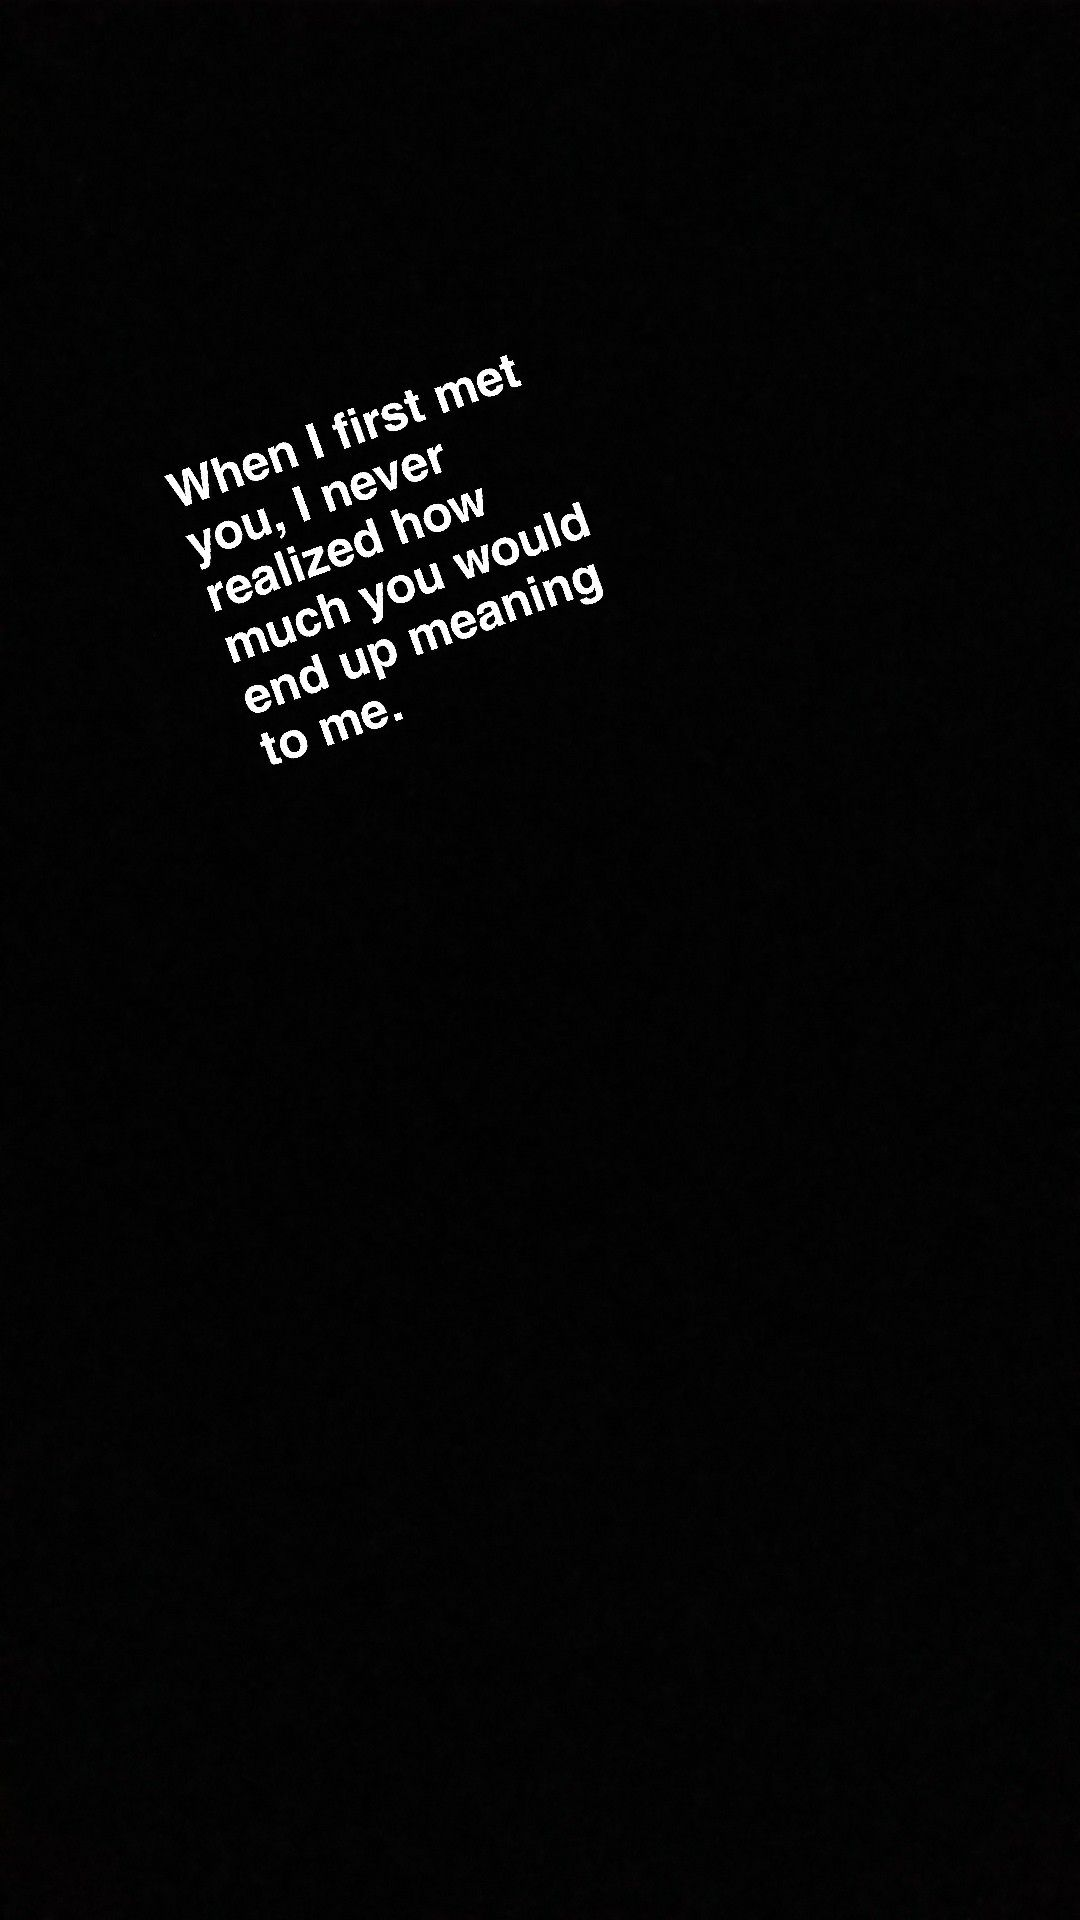 pin by saja haider on love quotes snapchat quotes feeling hurt